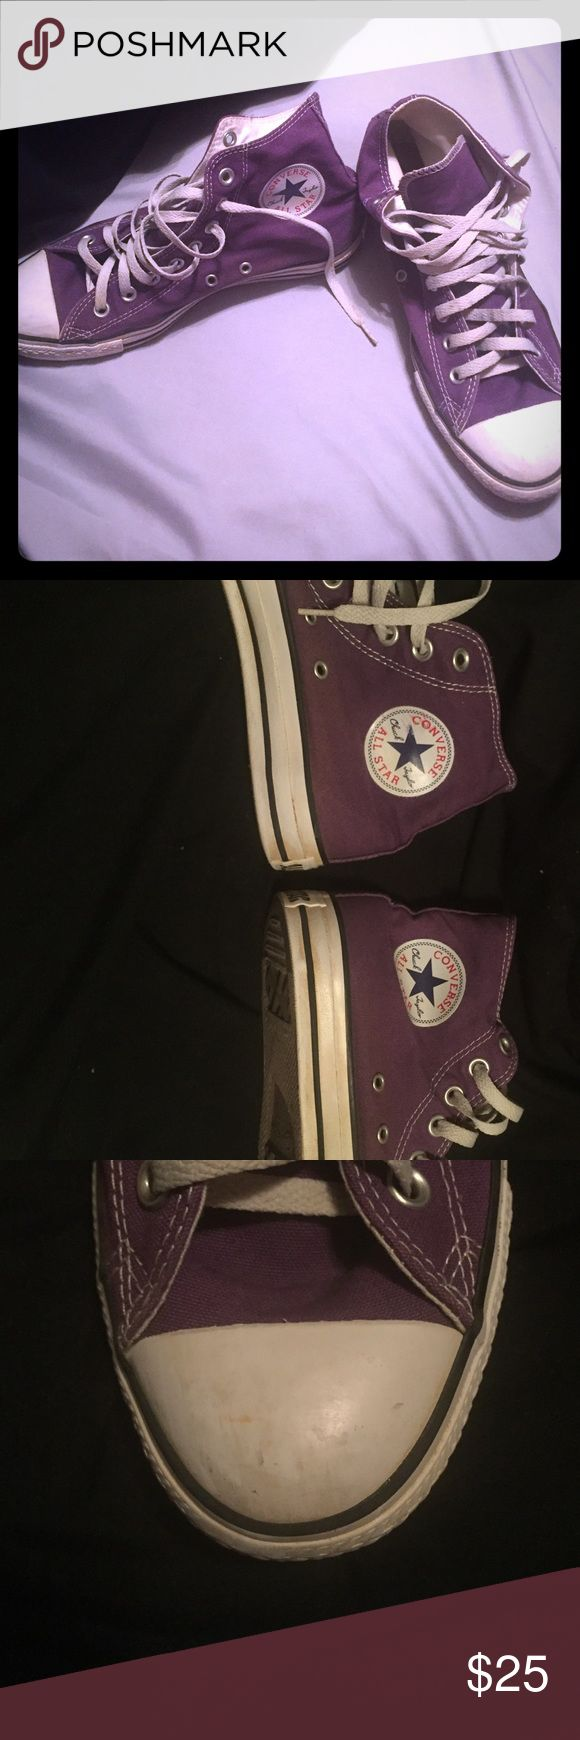 Purple Converse High Tops Some wear & tear but overall good condition. I just have no need for these purple ones anymore! Would love to pass to another Converse loving home☺️💕 Converse Shoes Sneakers